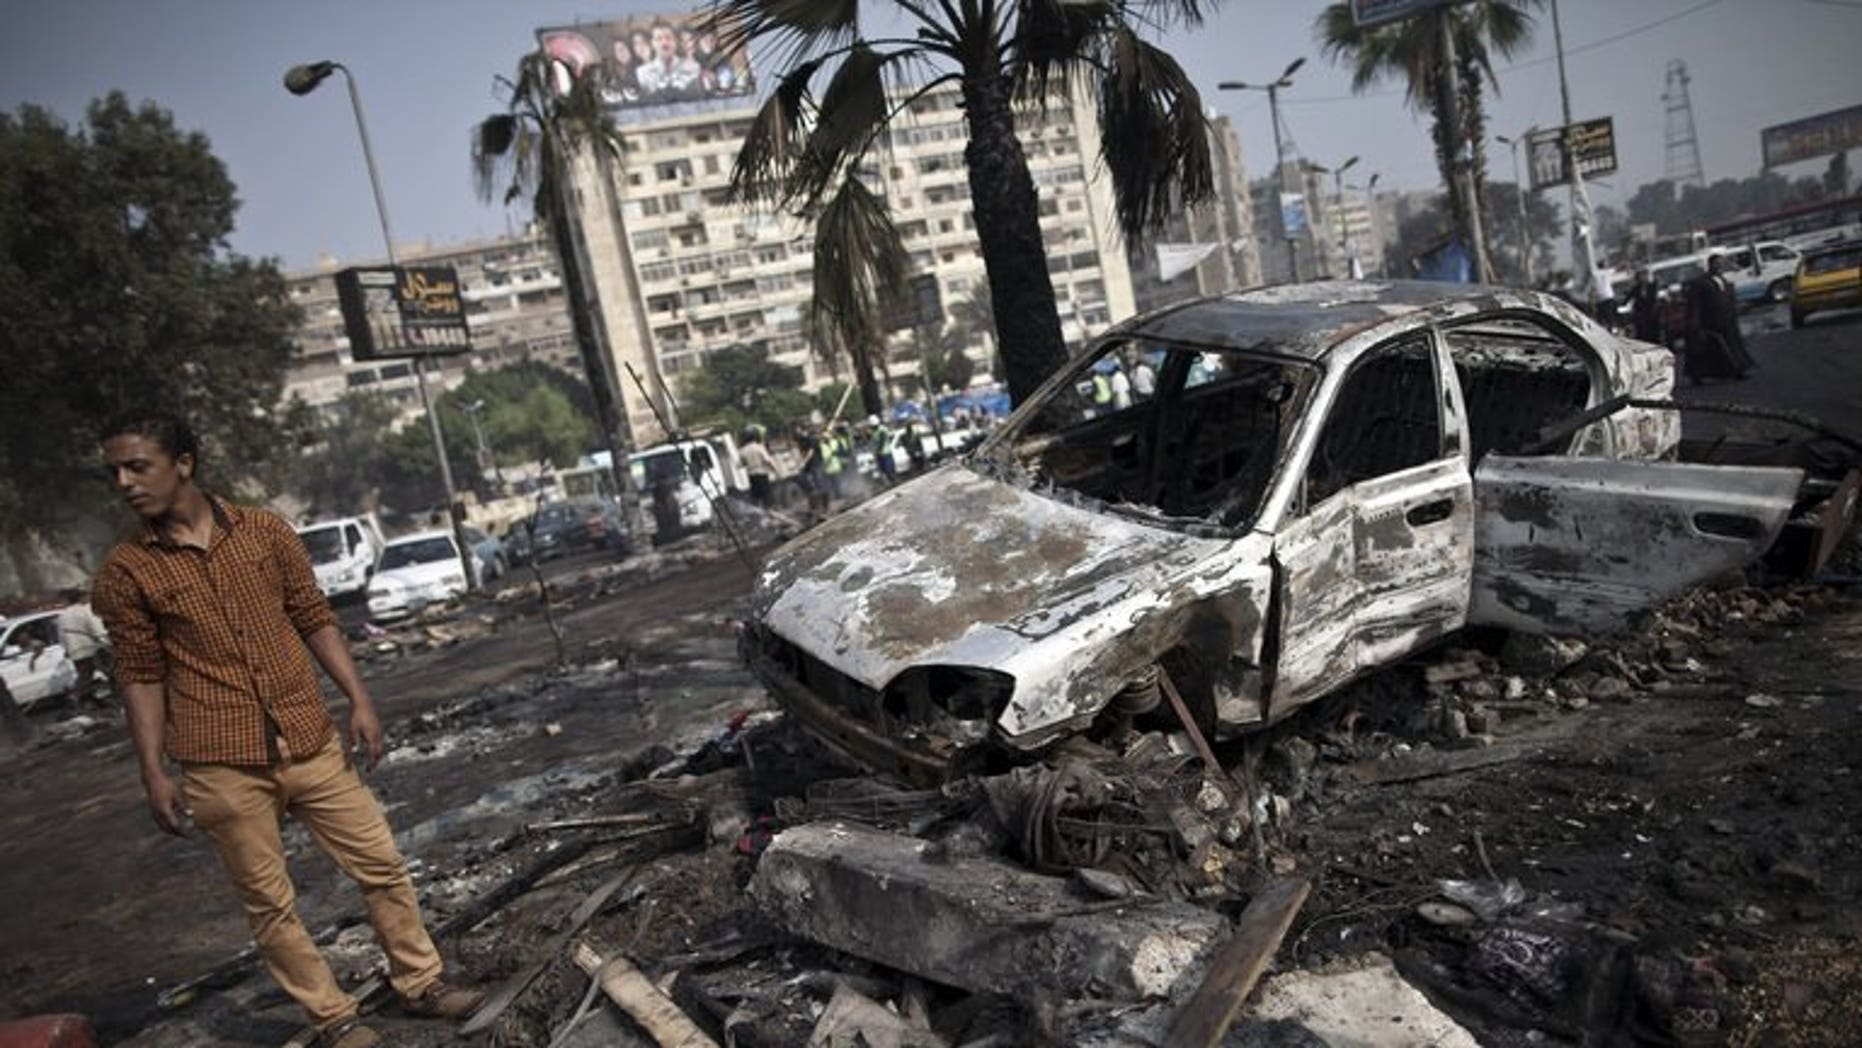 """A man stands amidst the debris at Rabaa al-Adawiya square in Cairo on Thursday. Britain has summoned Egypt's ambassador to express its """"deep concern"""" at the violence in the country and urged the authorities to act with """"the greatest restraint"""", the Foreign Office said on Thursday."""